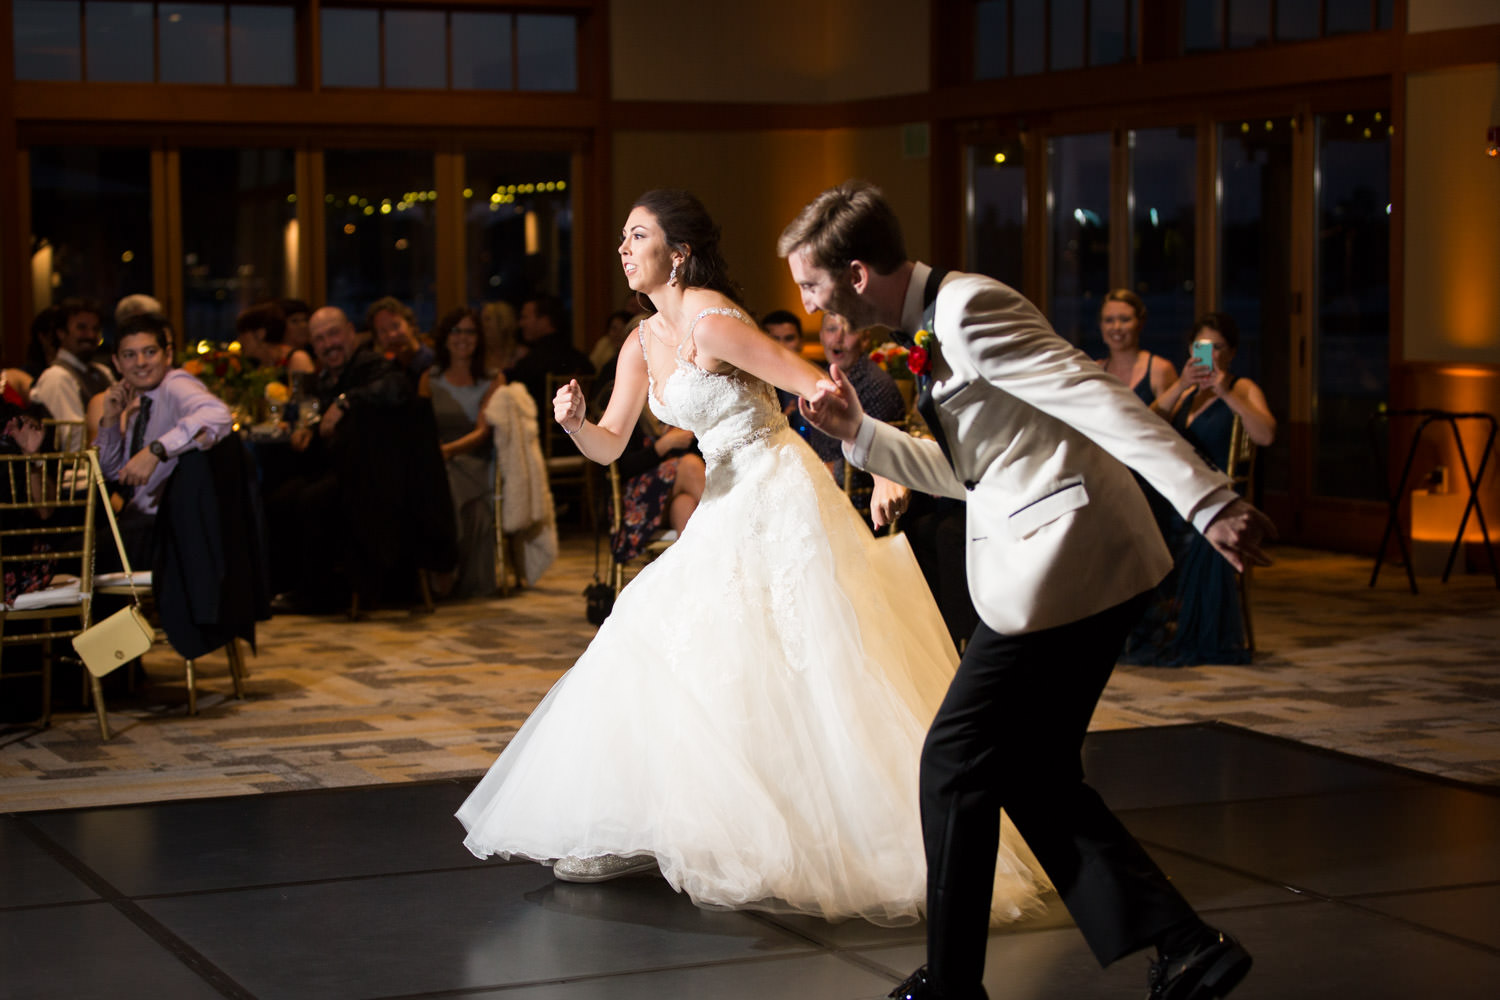 Bride and groom first dance at their wedding reception at the Coronado Community Center, Cavin Elizabeth Photography